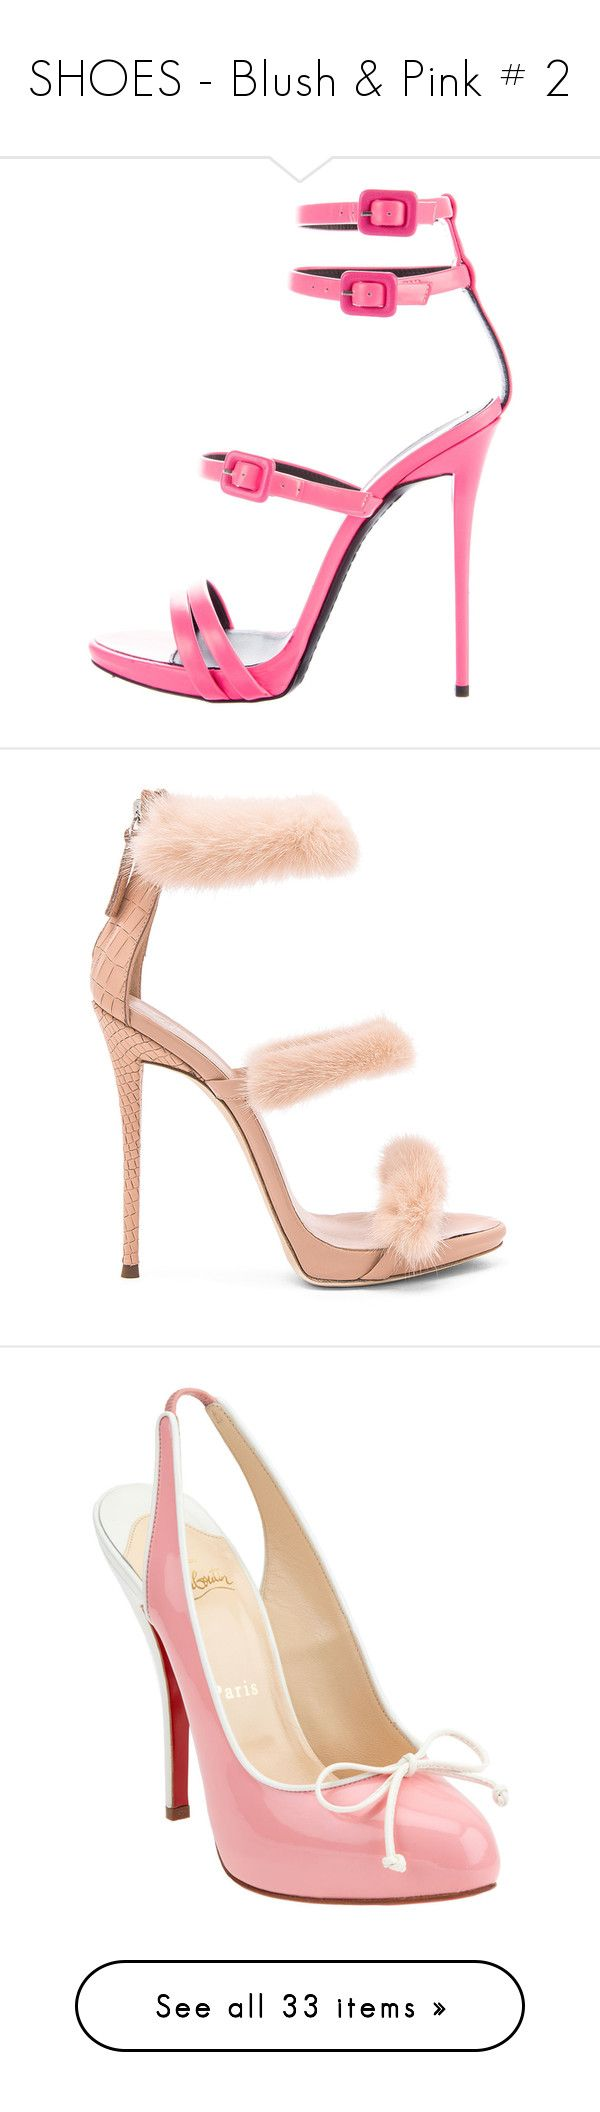 """""""SHOES - Blush & Pink # 2"""" by lynesse ❤ liked on Polyvore featuring shoes, sandals, pink, buckle sandals, neon pink sandals, leather sandals, pink strappy sandals, giuseppe zanotti sandals, pumps and heels"""